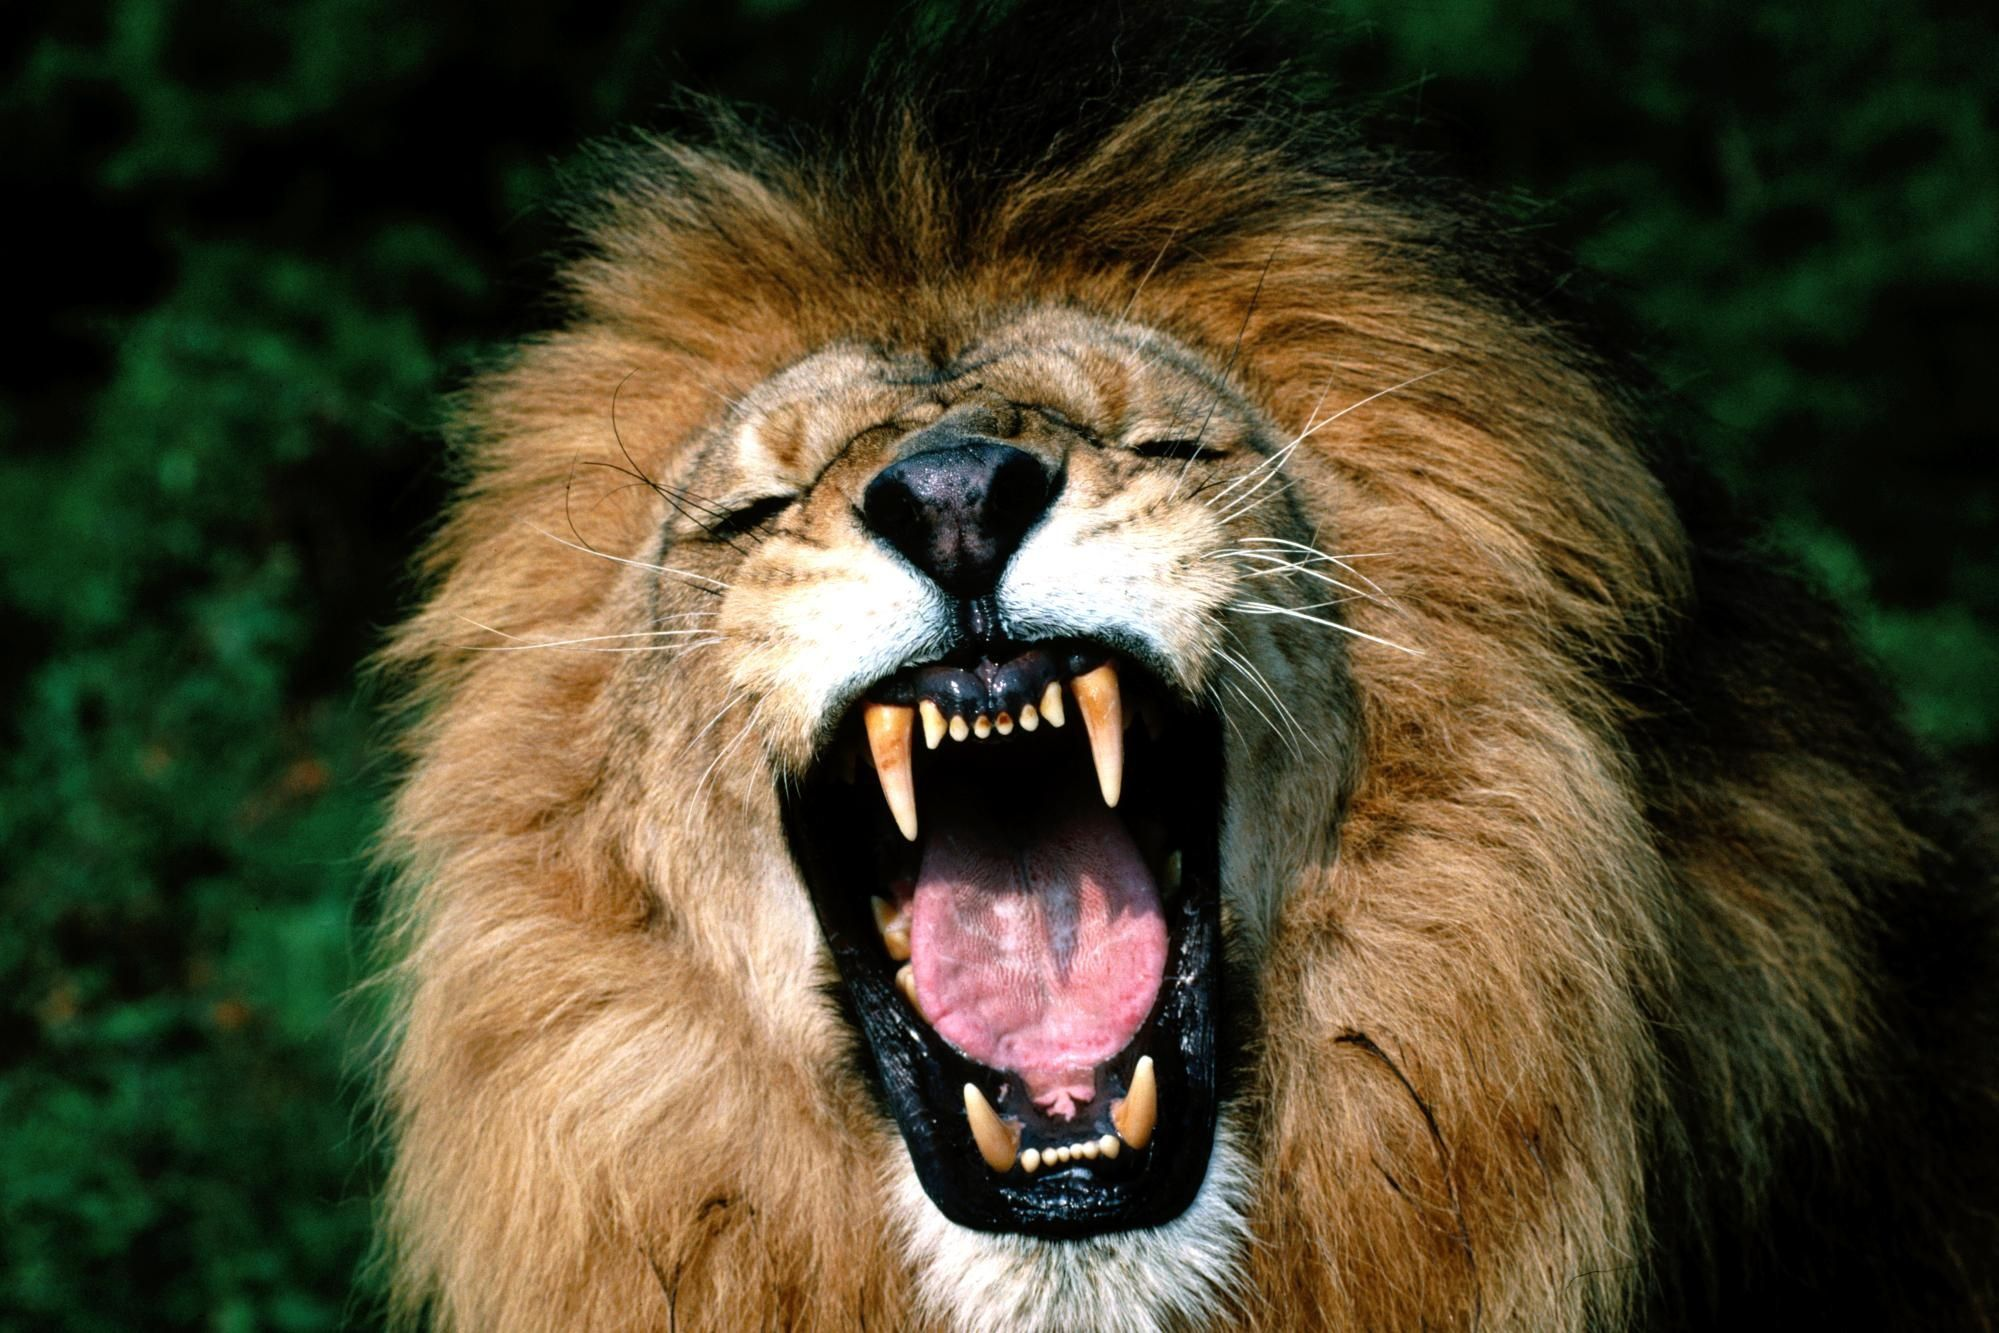 Download Wallpaper Lion Face Teeth Anger Aggression Mane